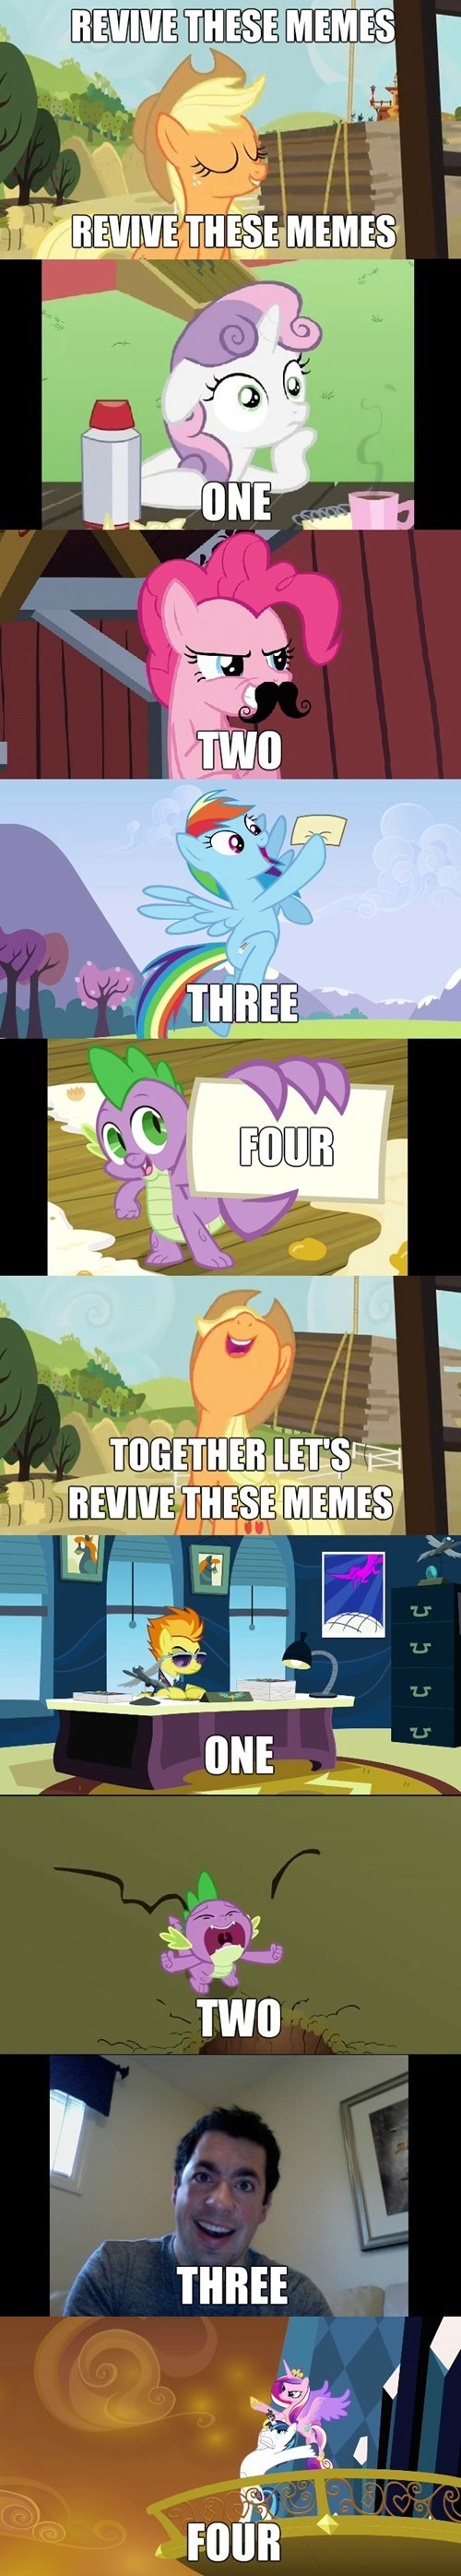 one two three four Memes revive all the memes - 7746036992